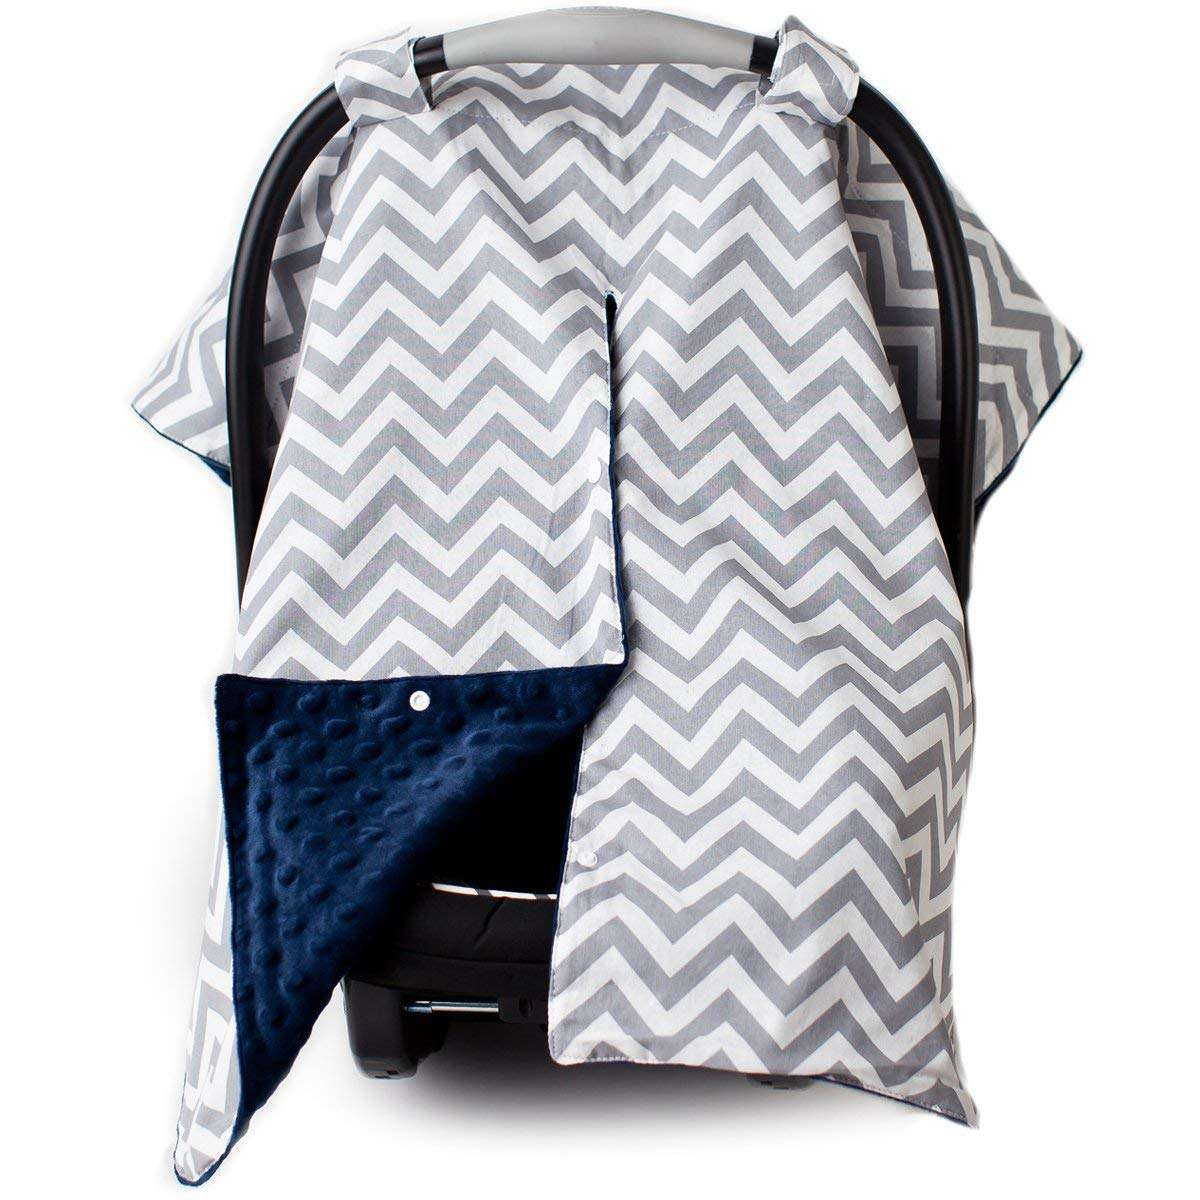 Kids N' Such Car Seat Canopy and Nursing Cover Up